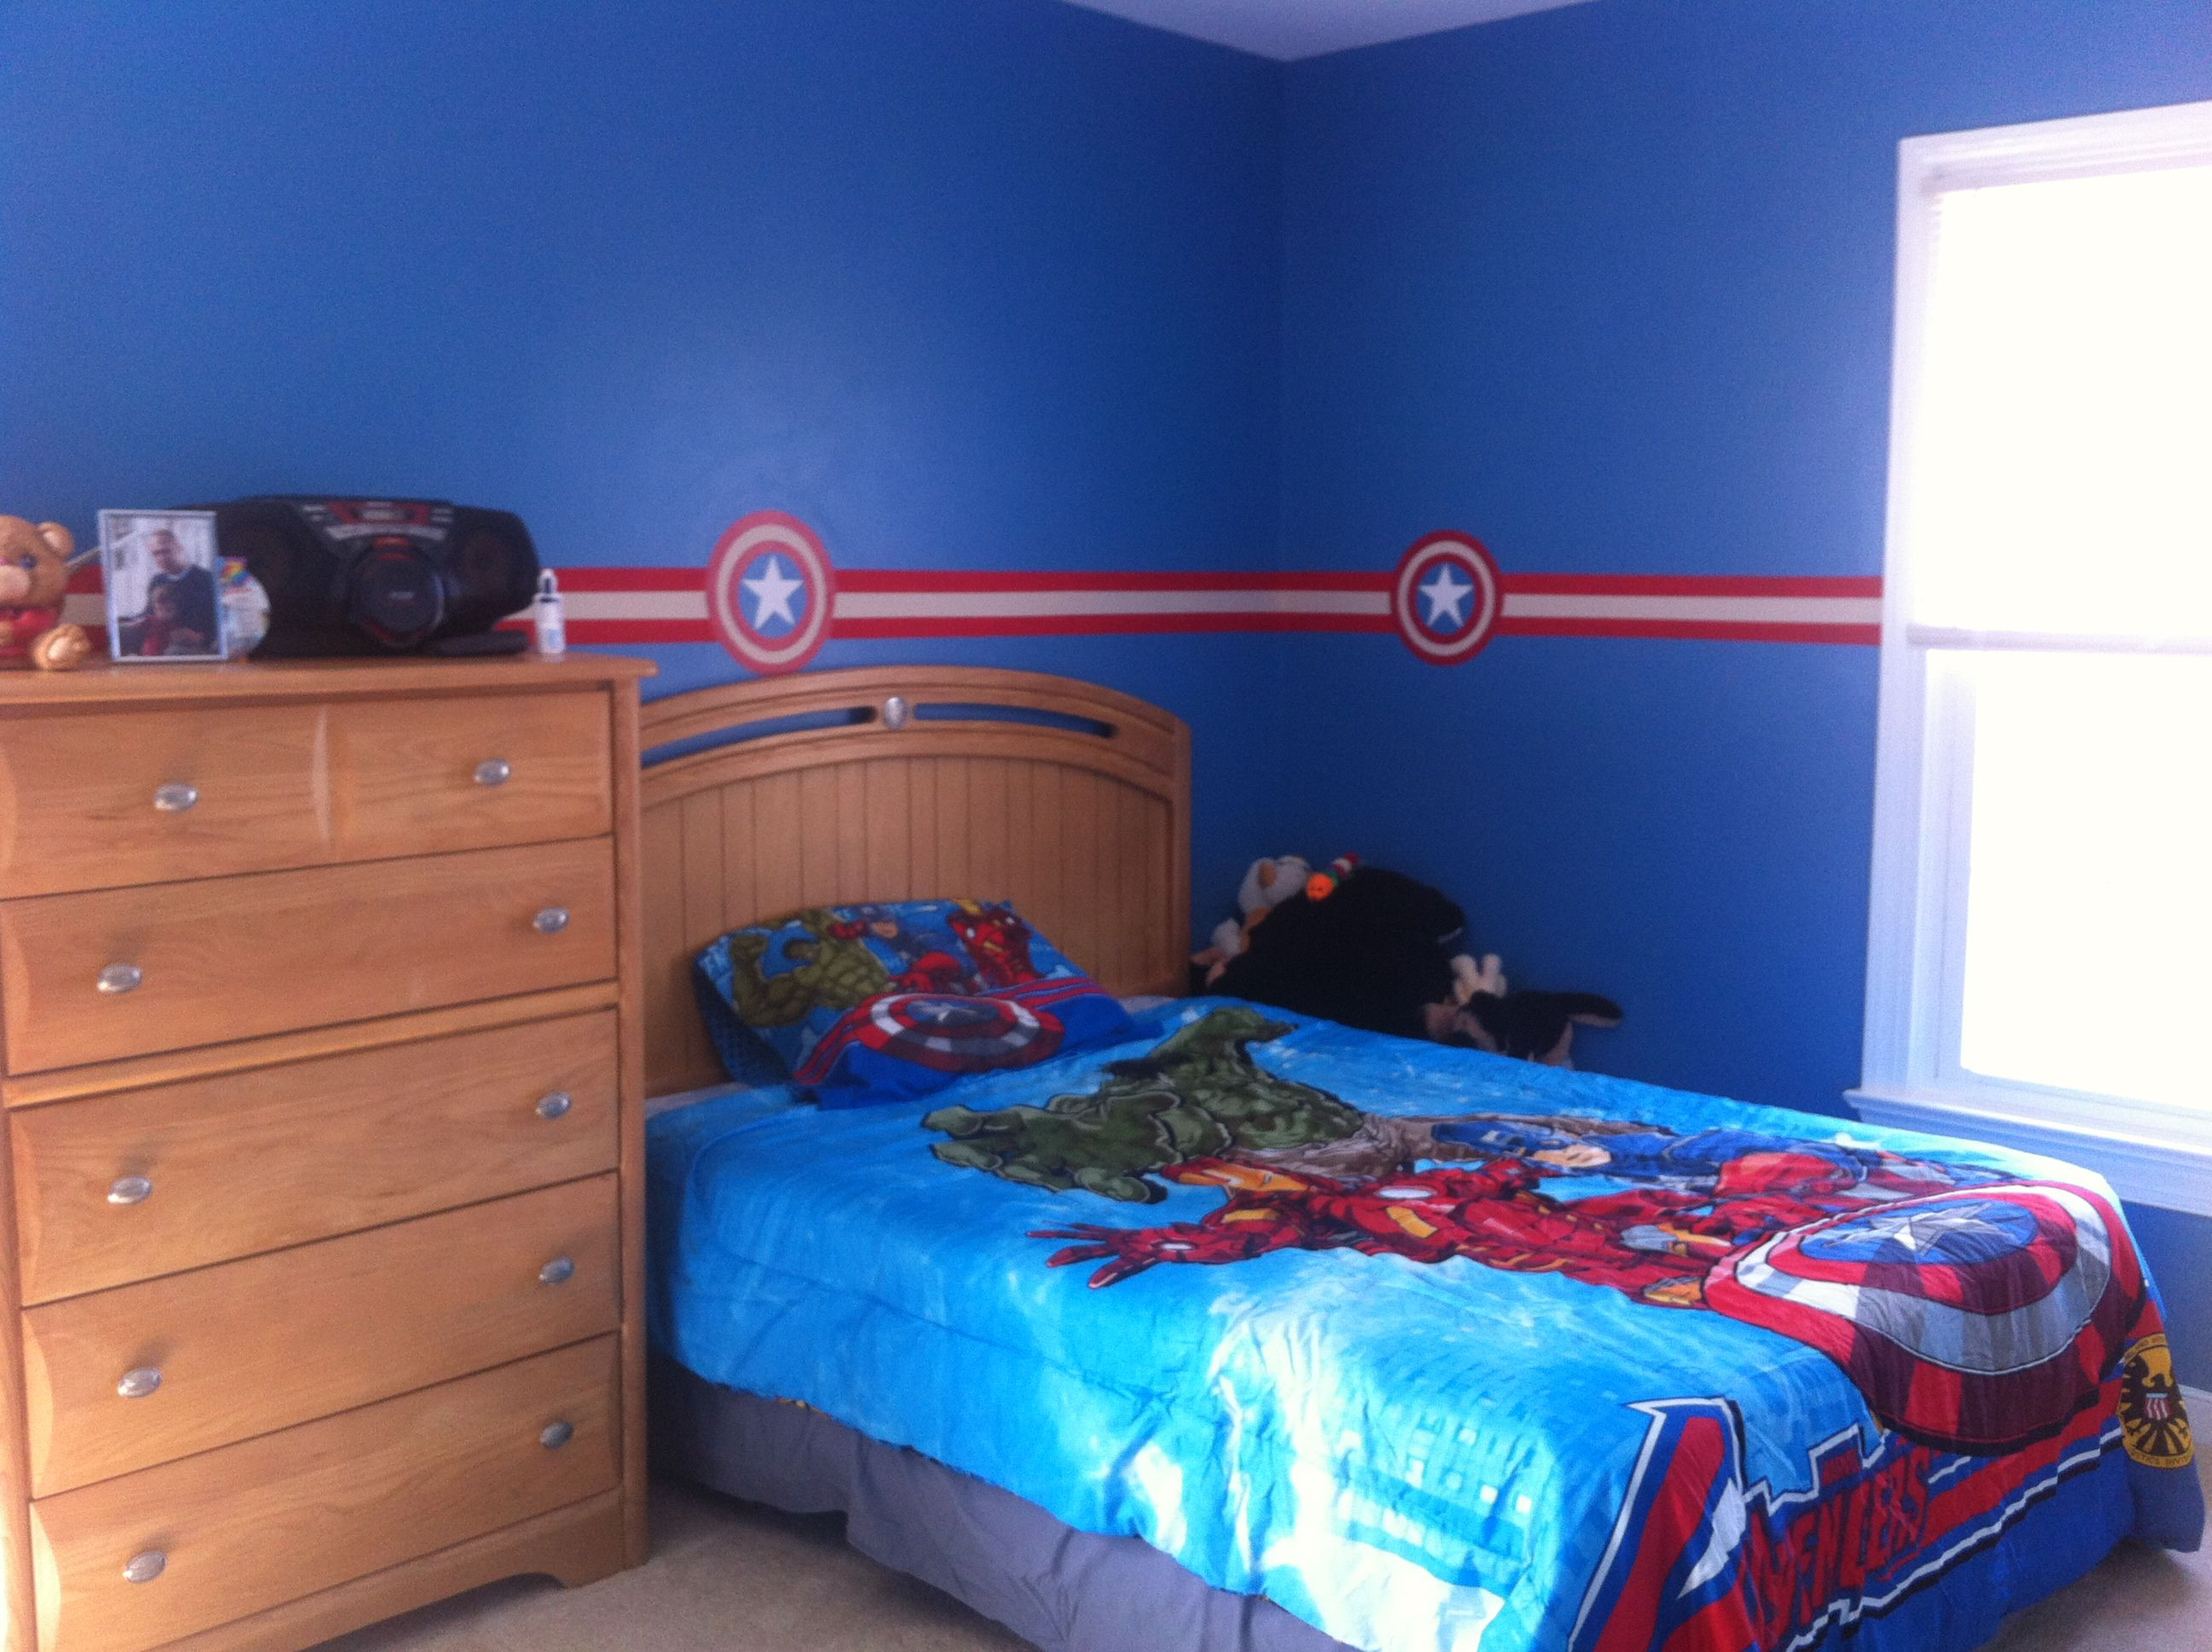 Oldest Sonu0027s Room Decor Captain America Theme! We Just Picked A Nice  Complimentary Blue To